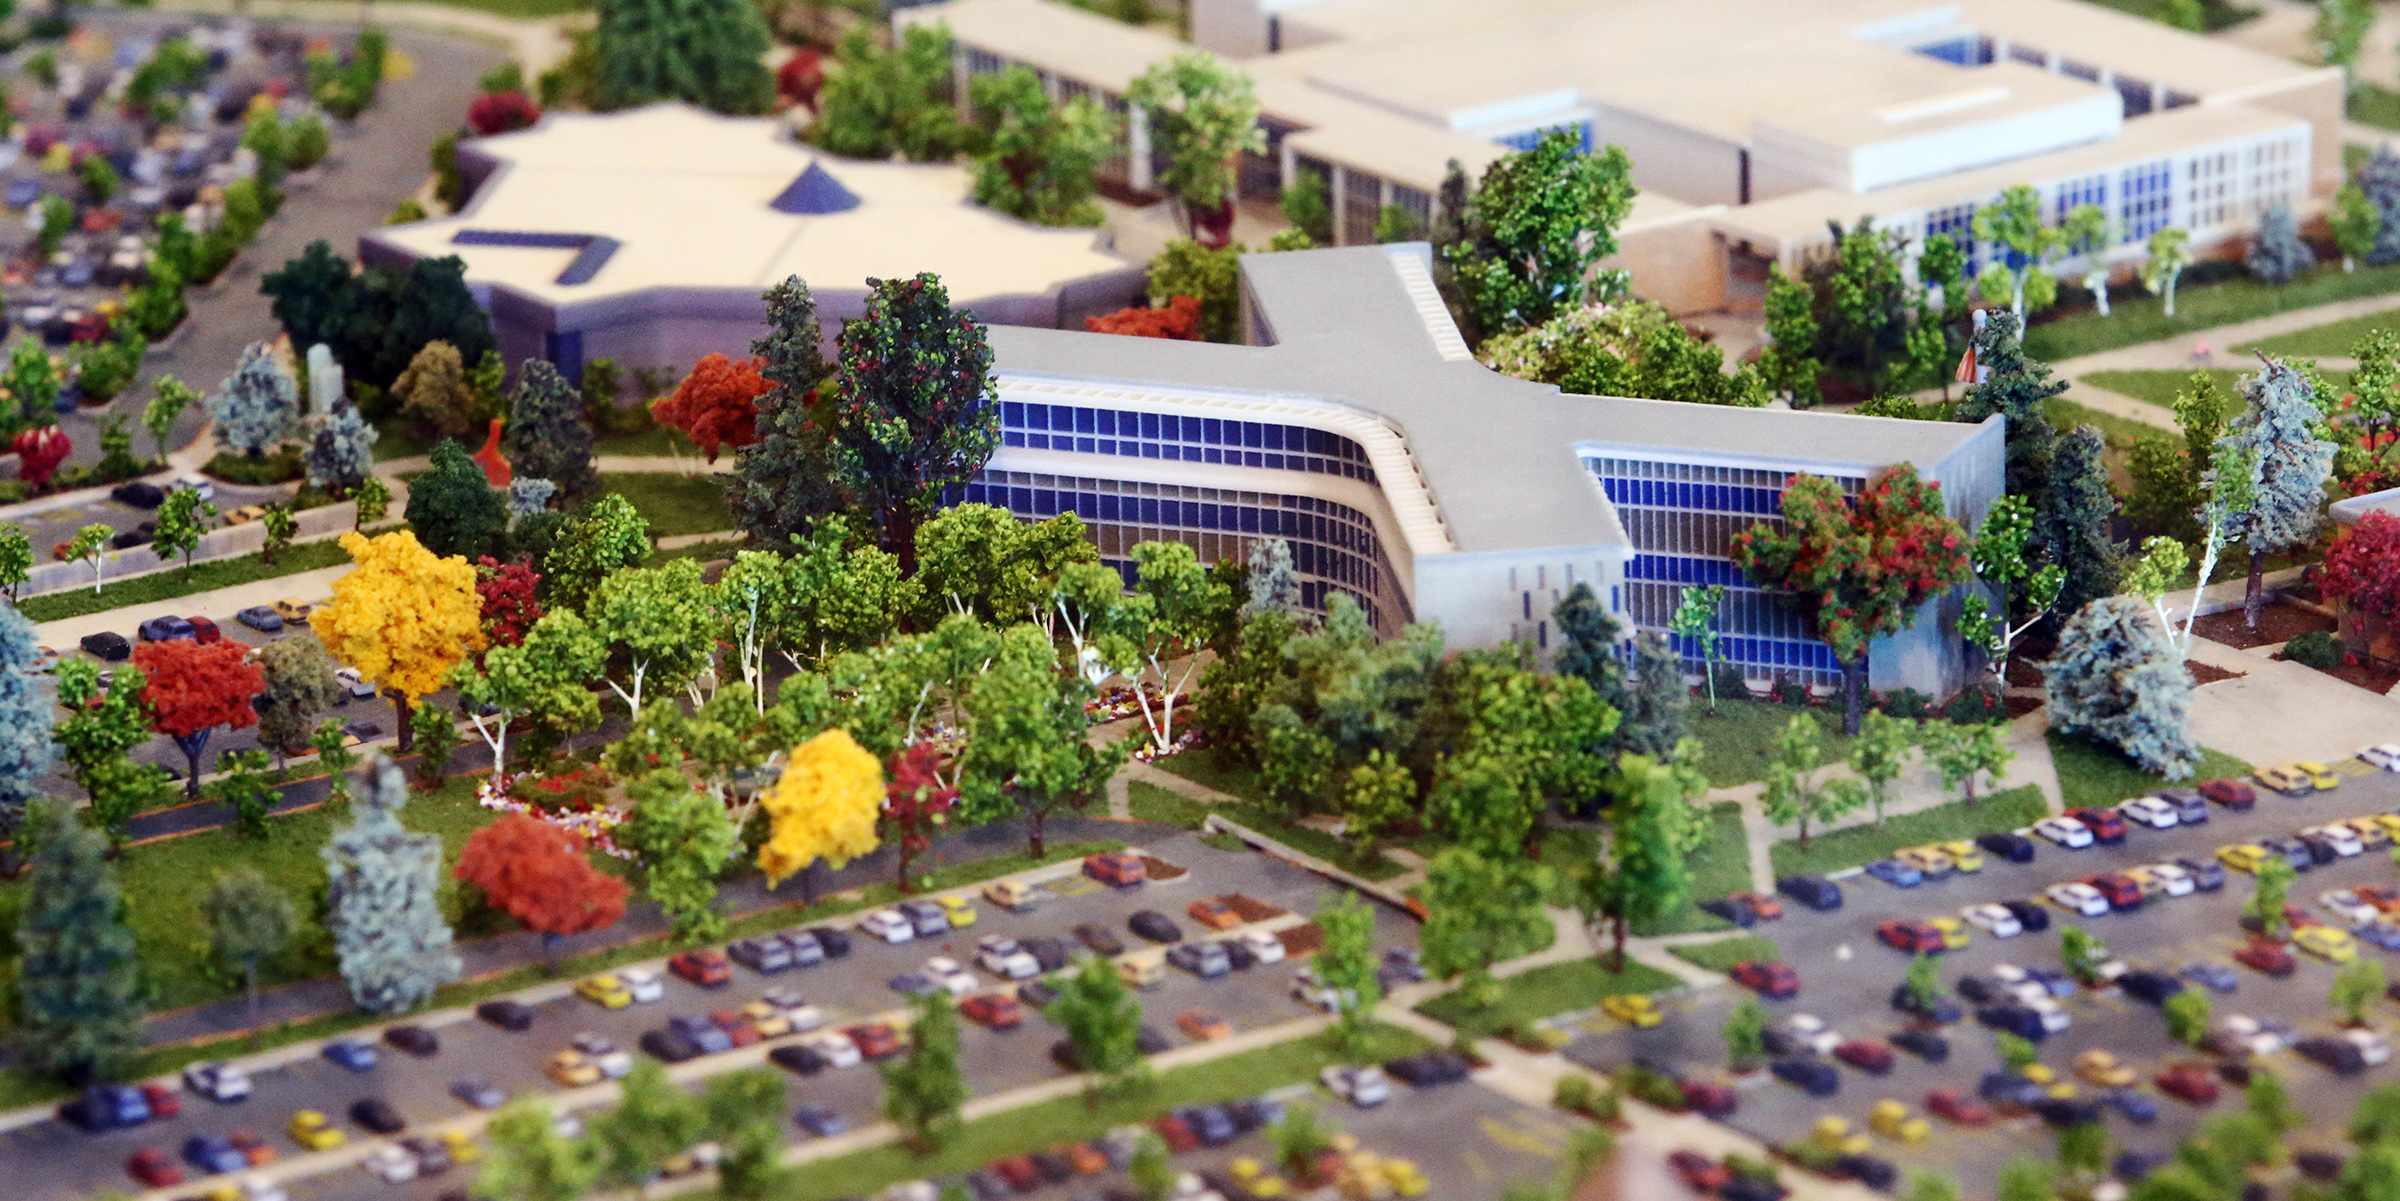 BYU unveils a highly-detailed campus diorama on Tuesday, July 2, 2019.